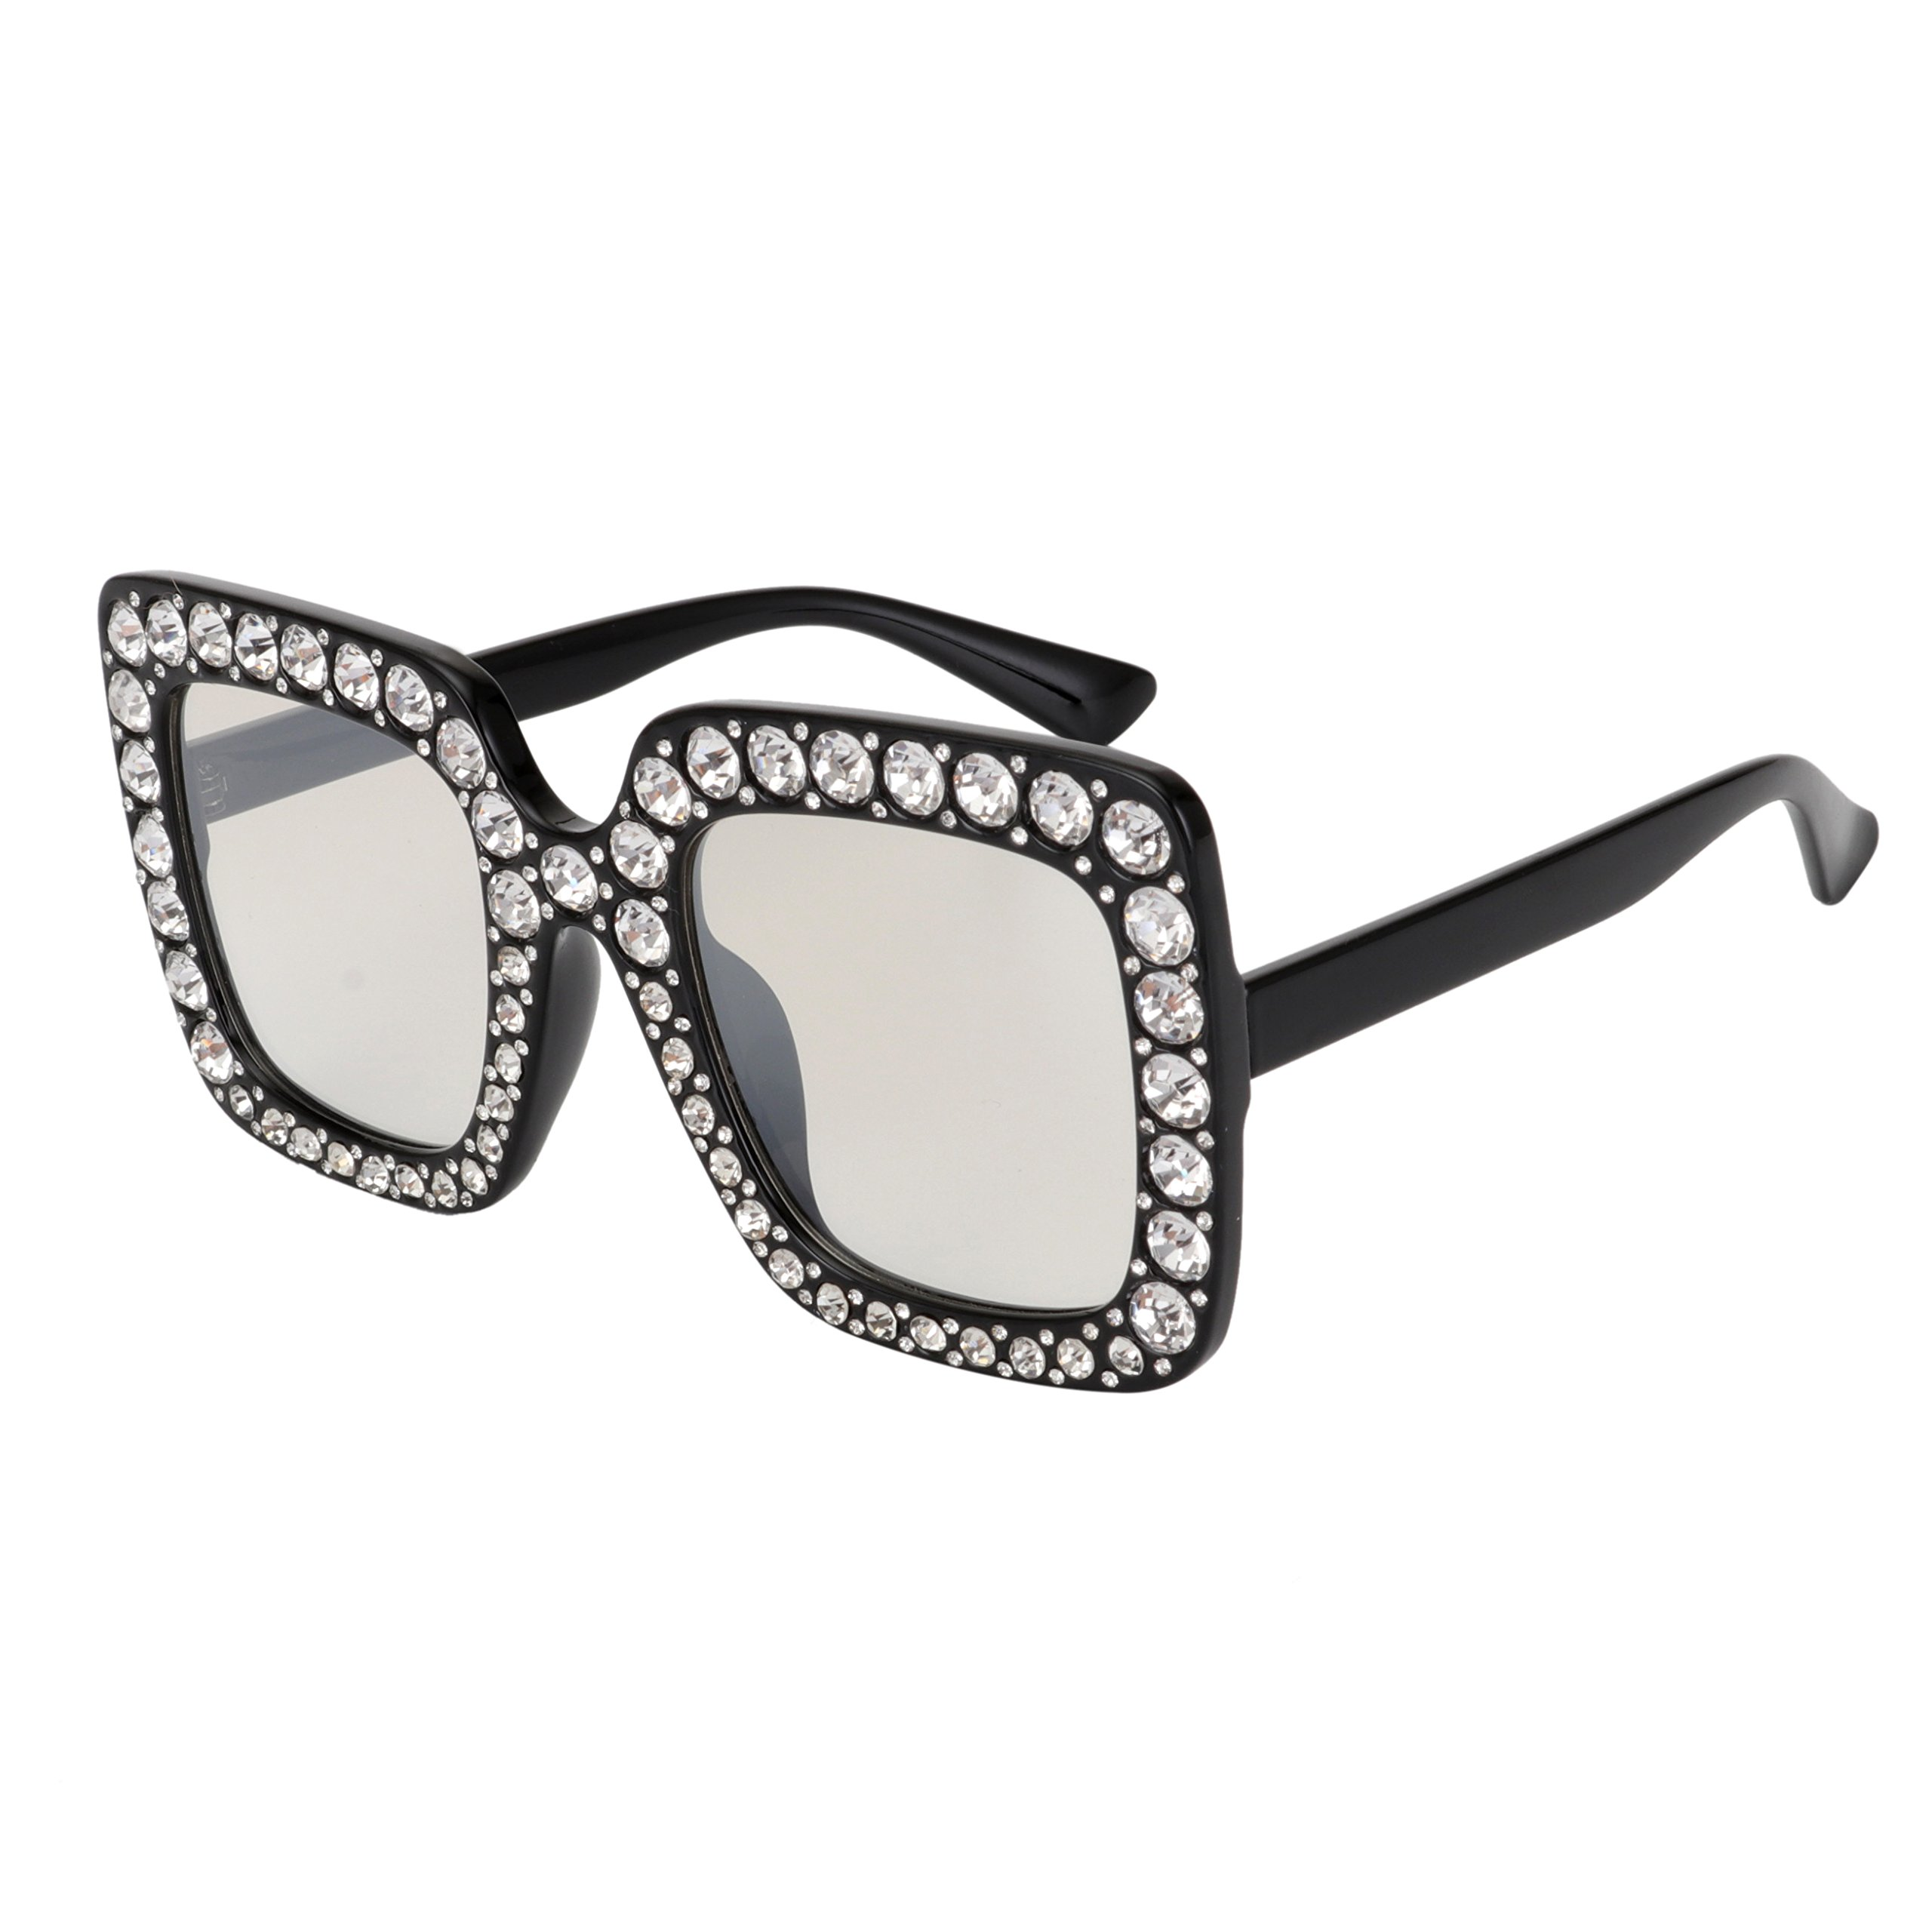 024a7a5d5b Galleon - ROYAL GIRL Sunglasses For Women Oversized Square Luxury Crystal  Frame Brand Designer Fashion Glasses (Black-Clear